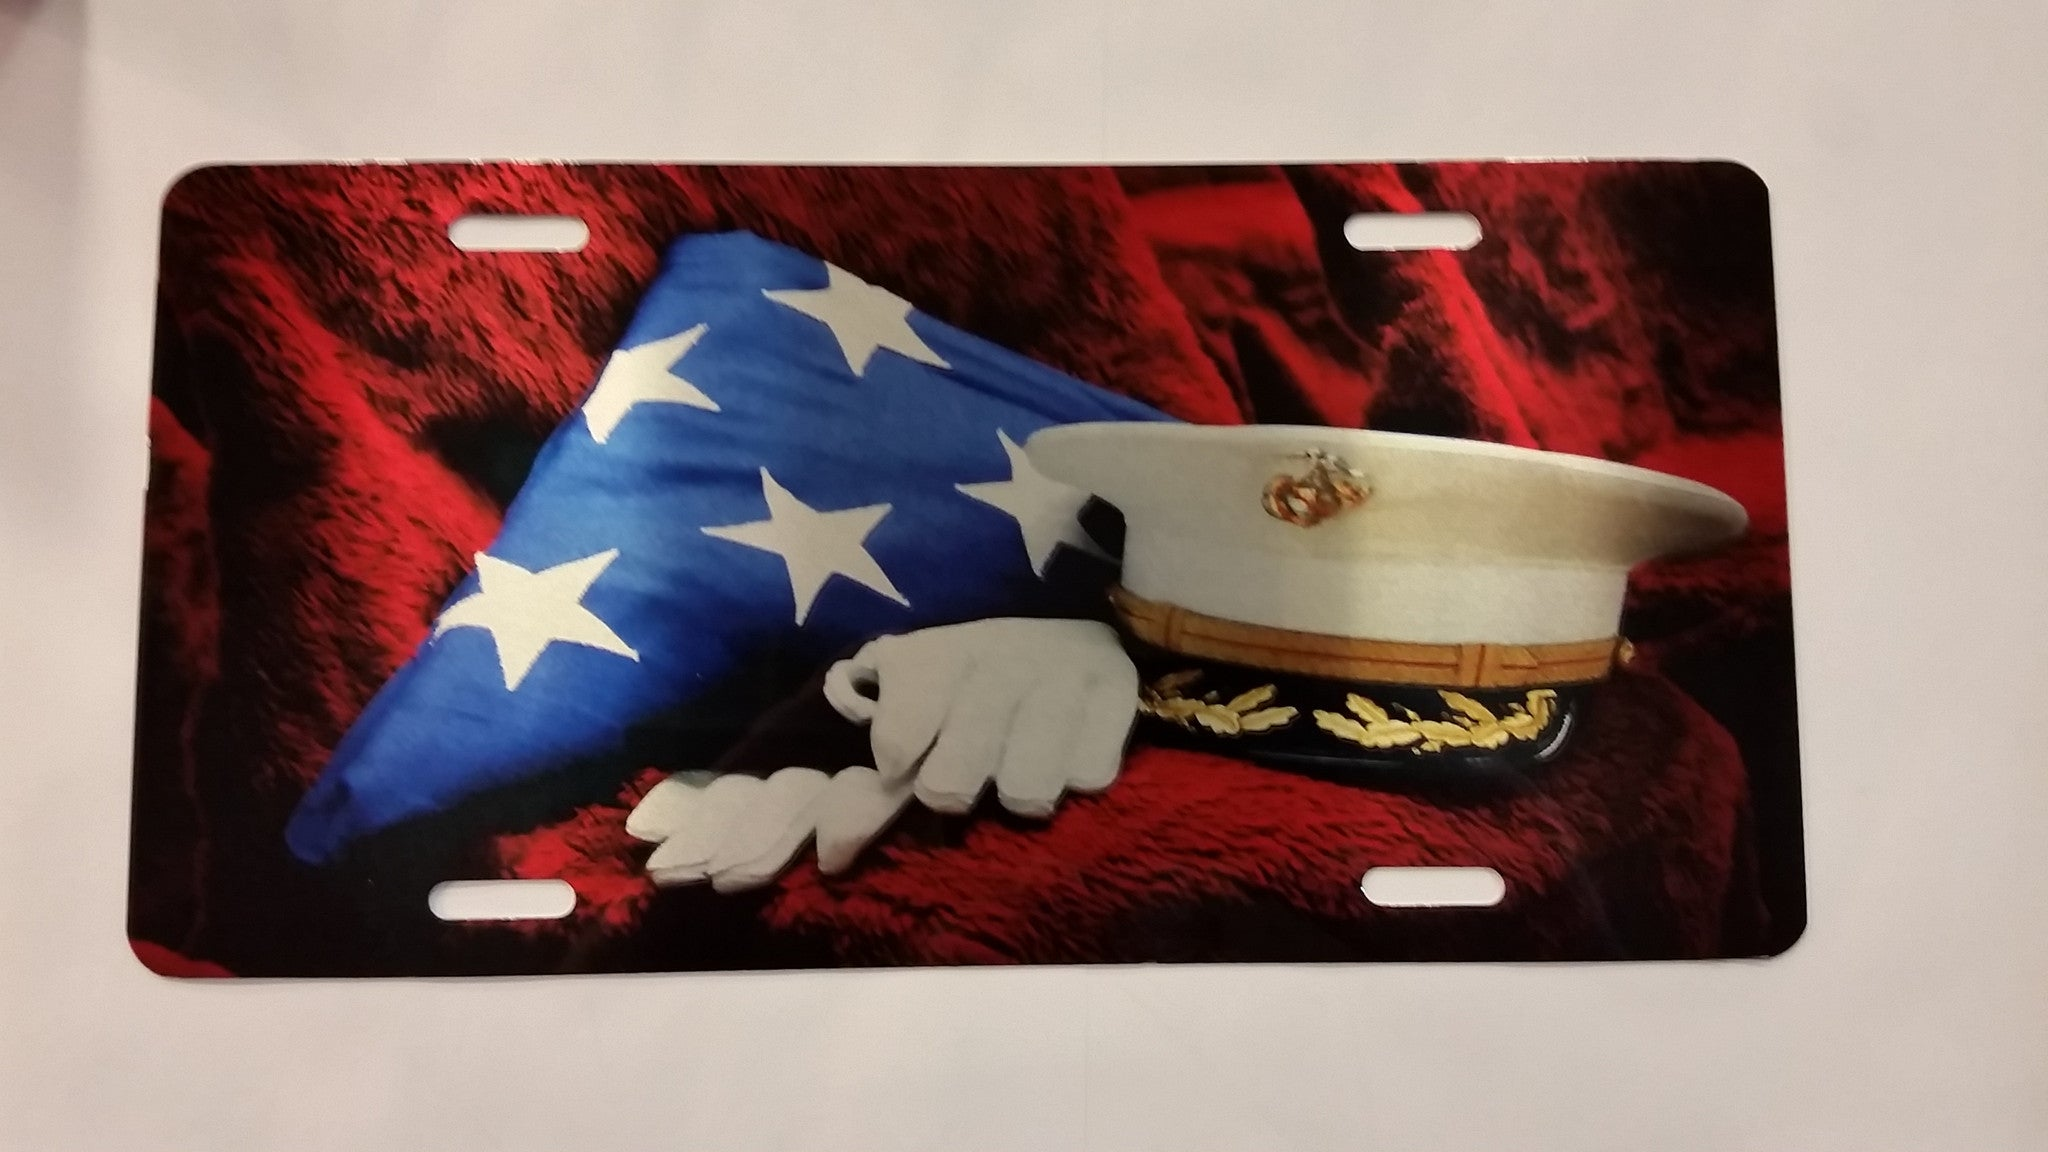 U.S. Marine Corps Flag/Memorial License Plate